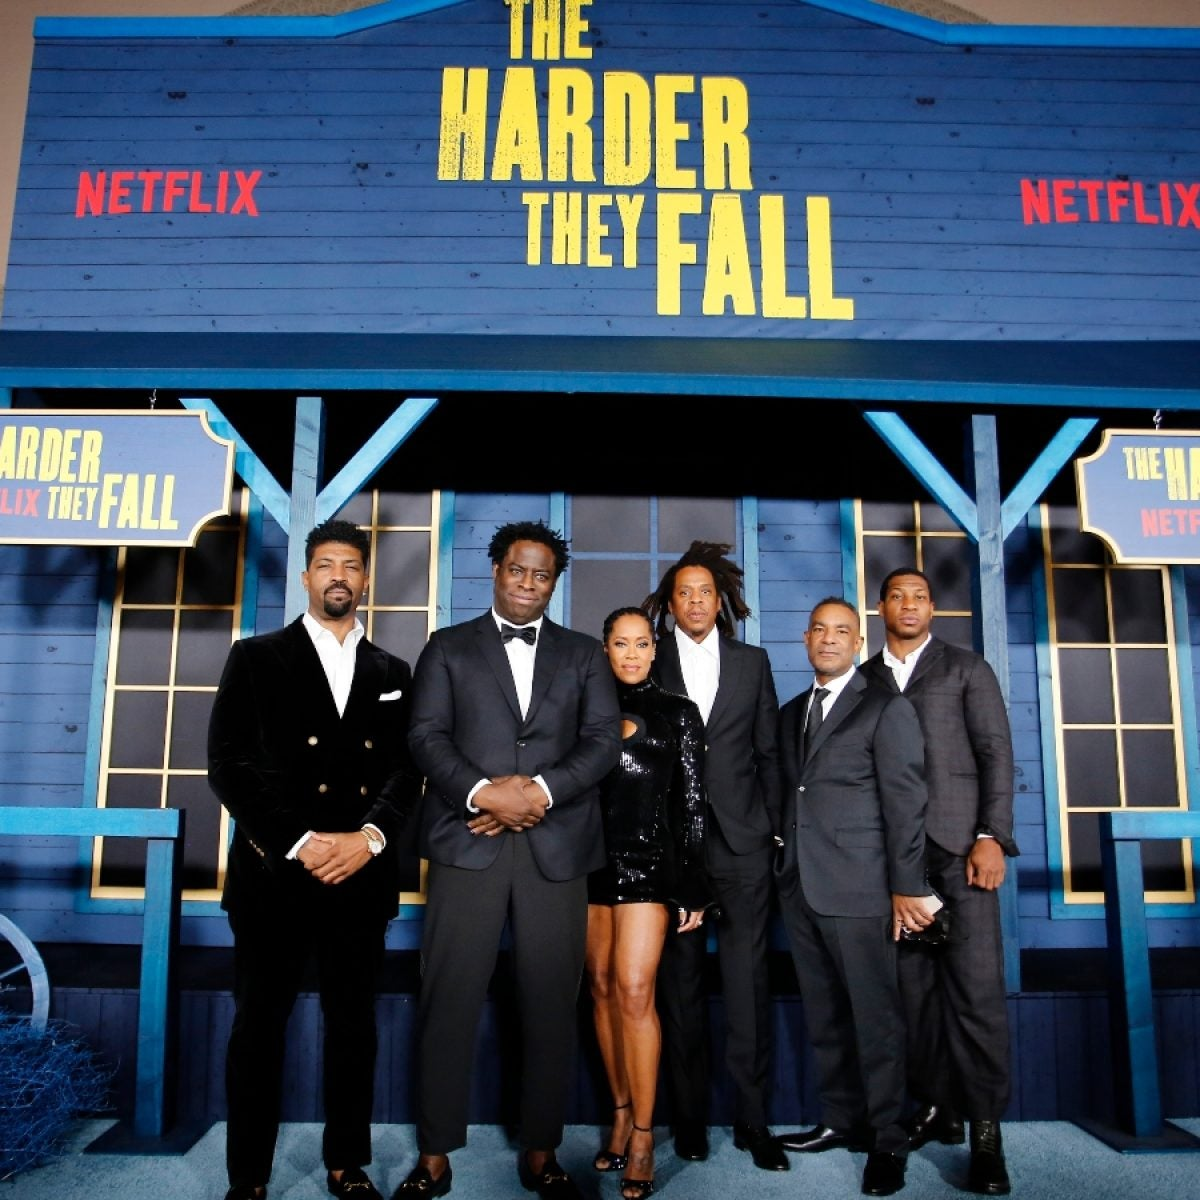 Everybody Came Out For The Premiere of 'The Harder They Fall' In LA Last Night